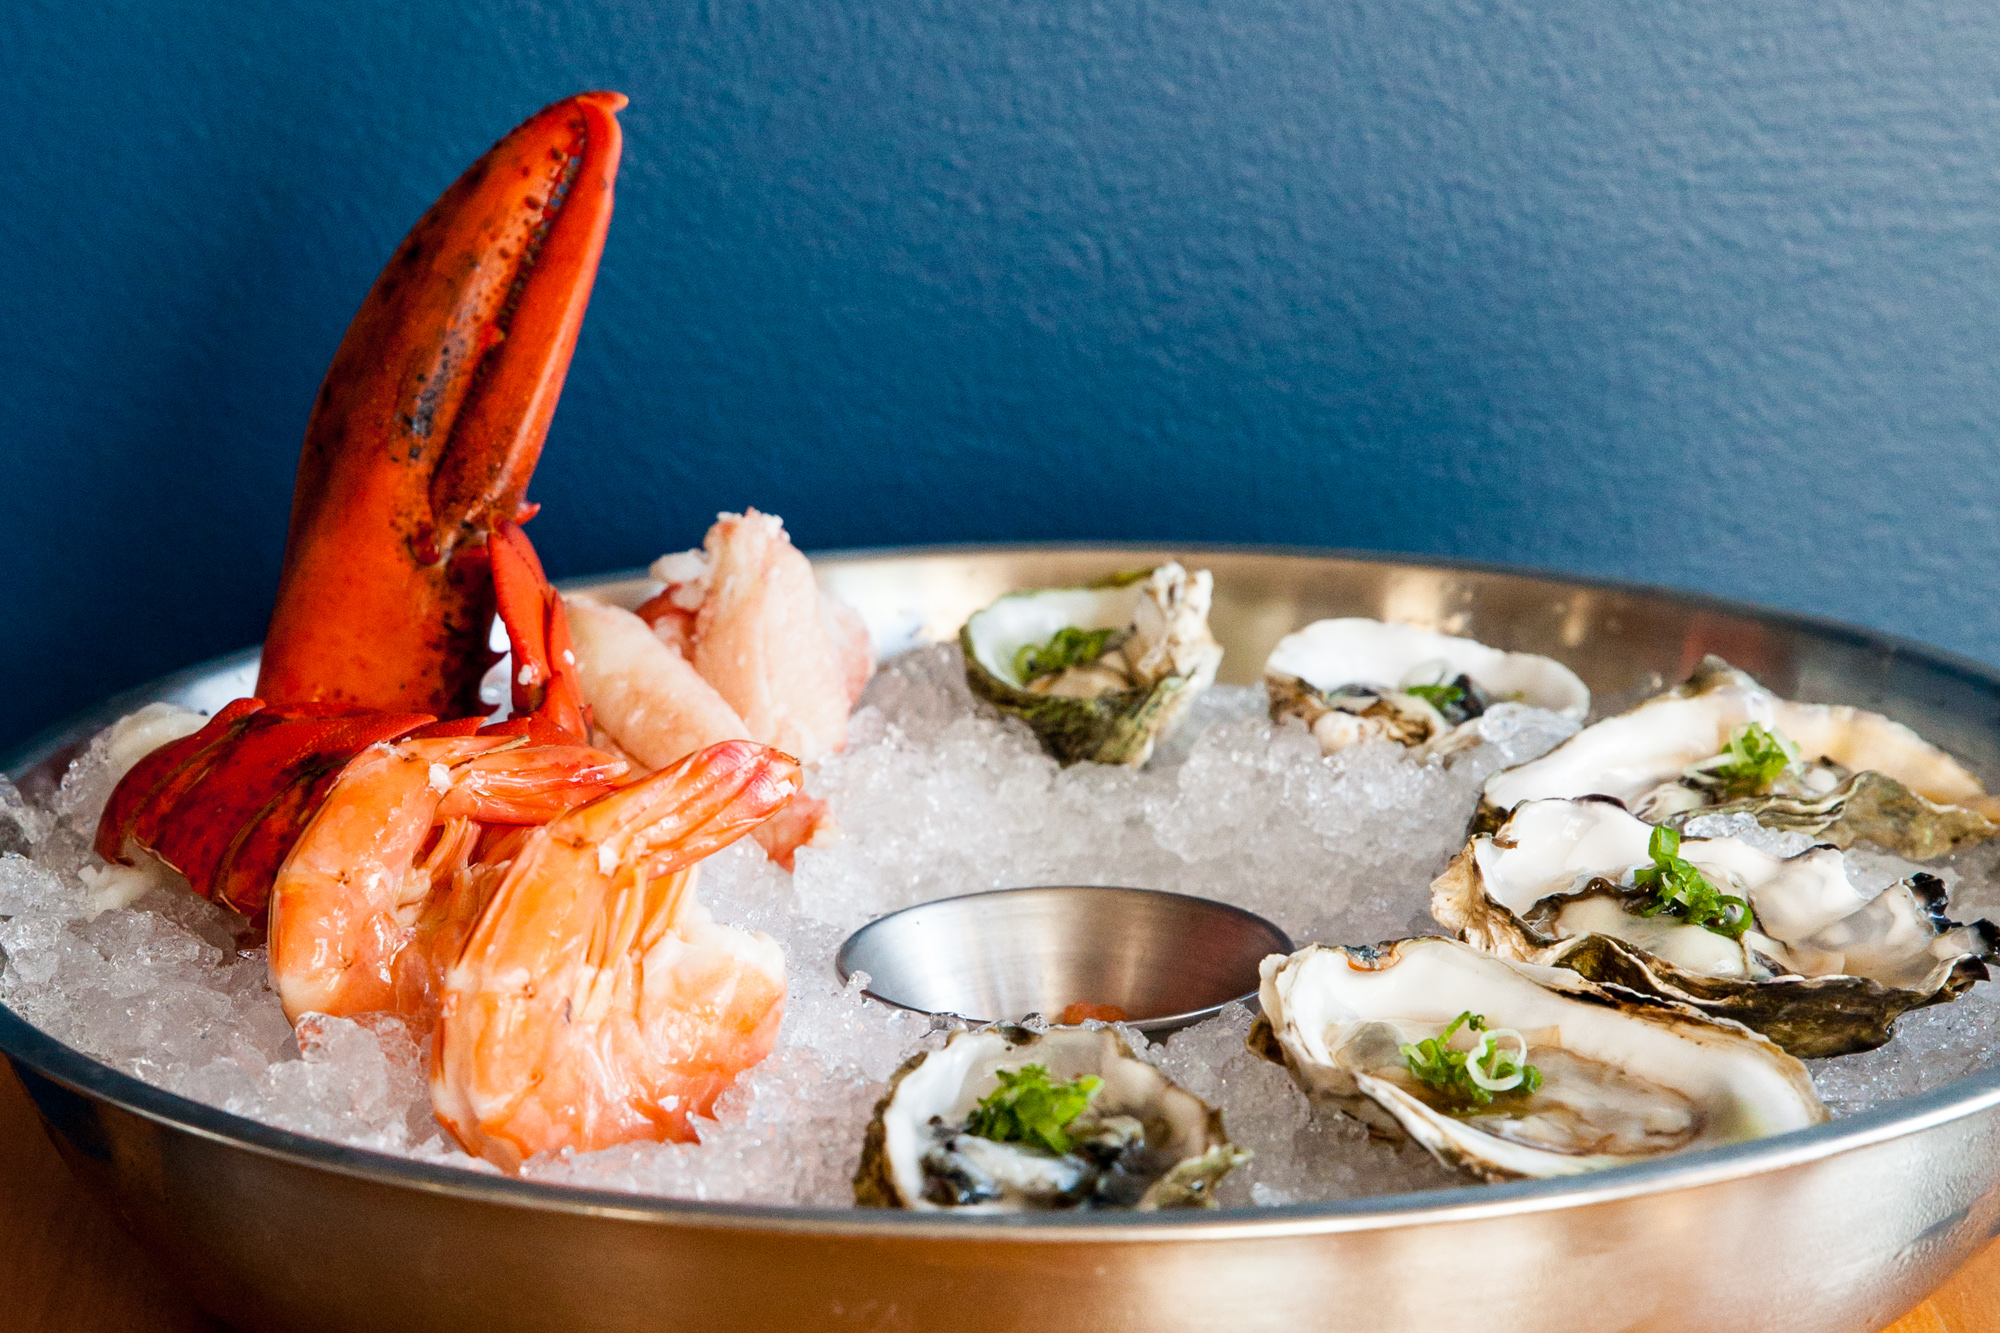 We'll shuck oysters and pour bubbles to toast!